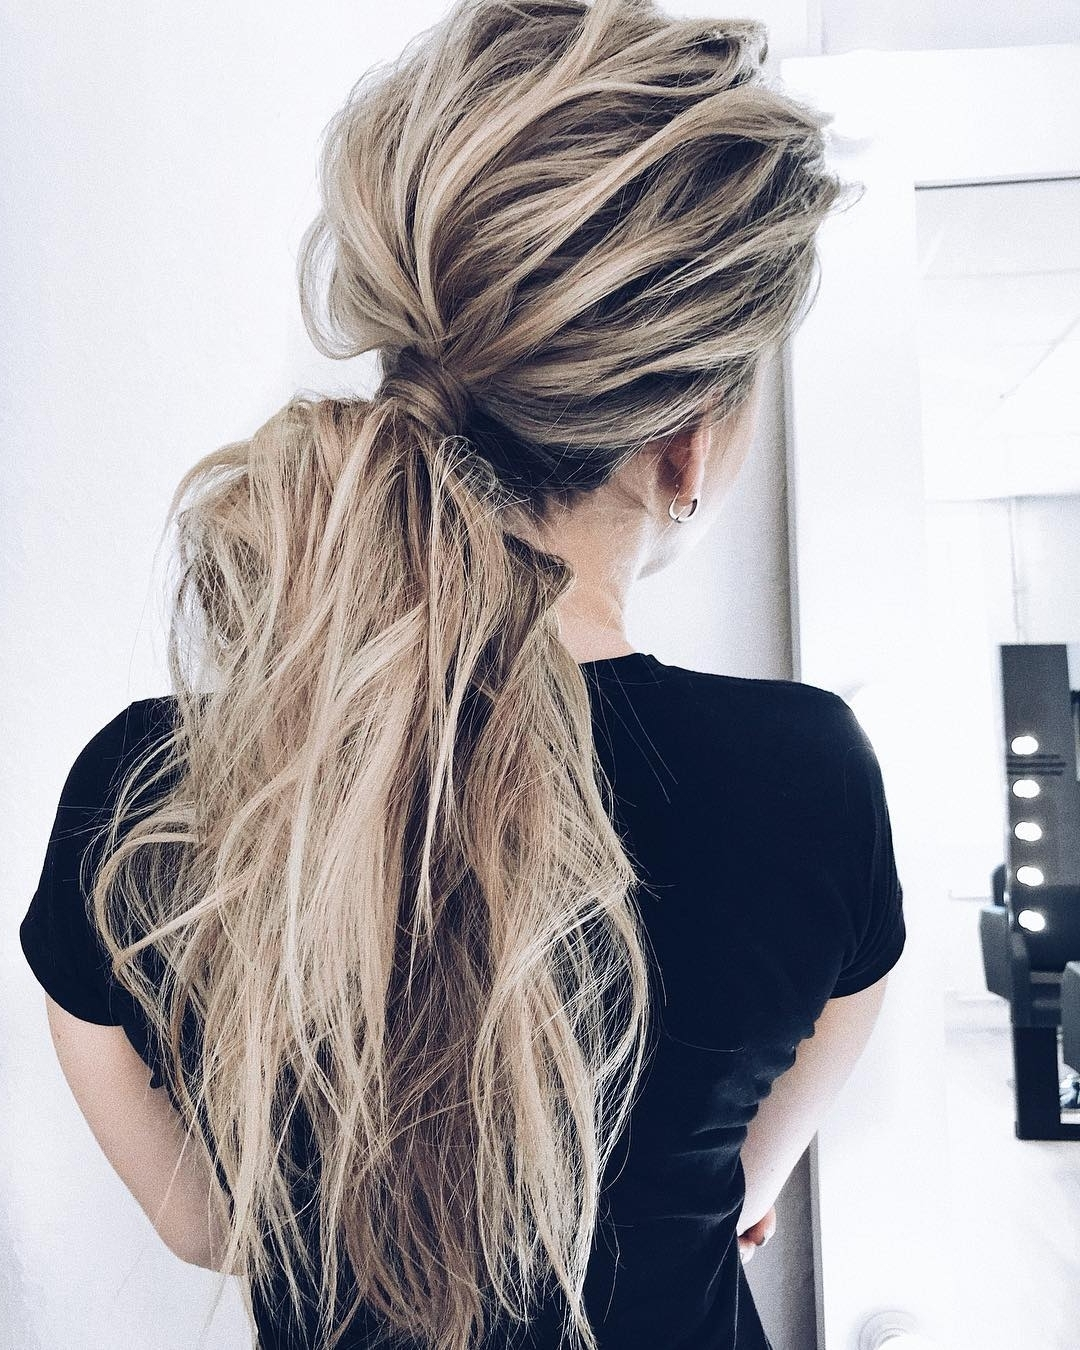 10 Creative Ponytail Hairstyles For Long Hair, Summer Hairstyle Inside 2017 Curly Pony Hairstyles For Ultra Long Hair (View 12 of 20)